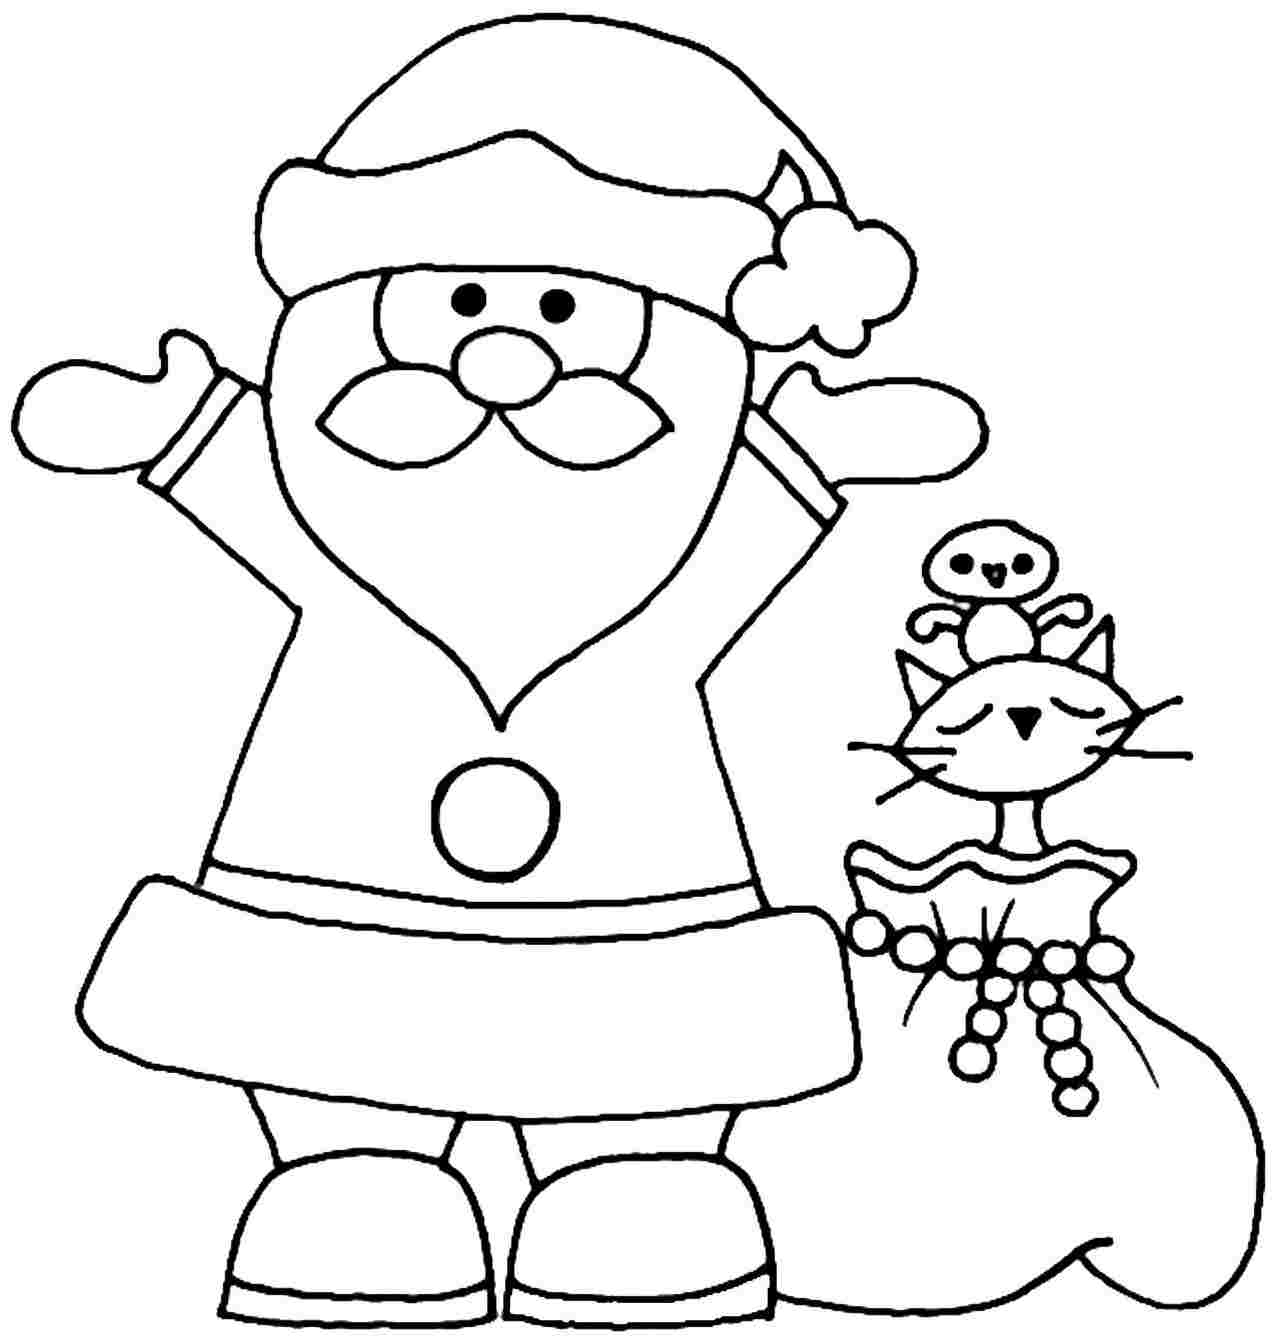 1277x1344 Christmas Coloring Pages For Preschoolers